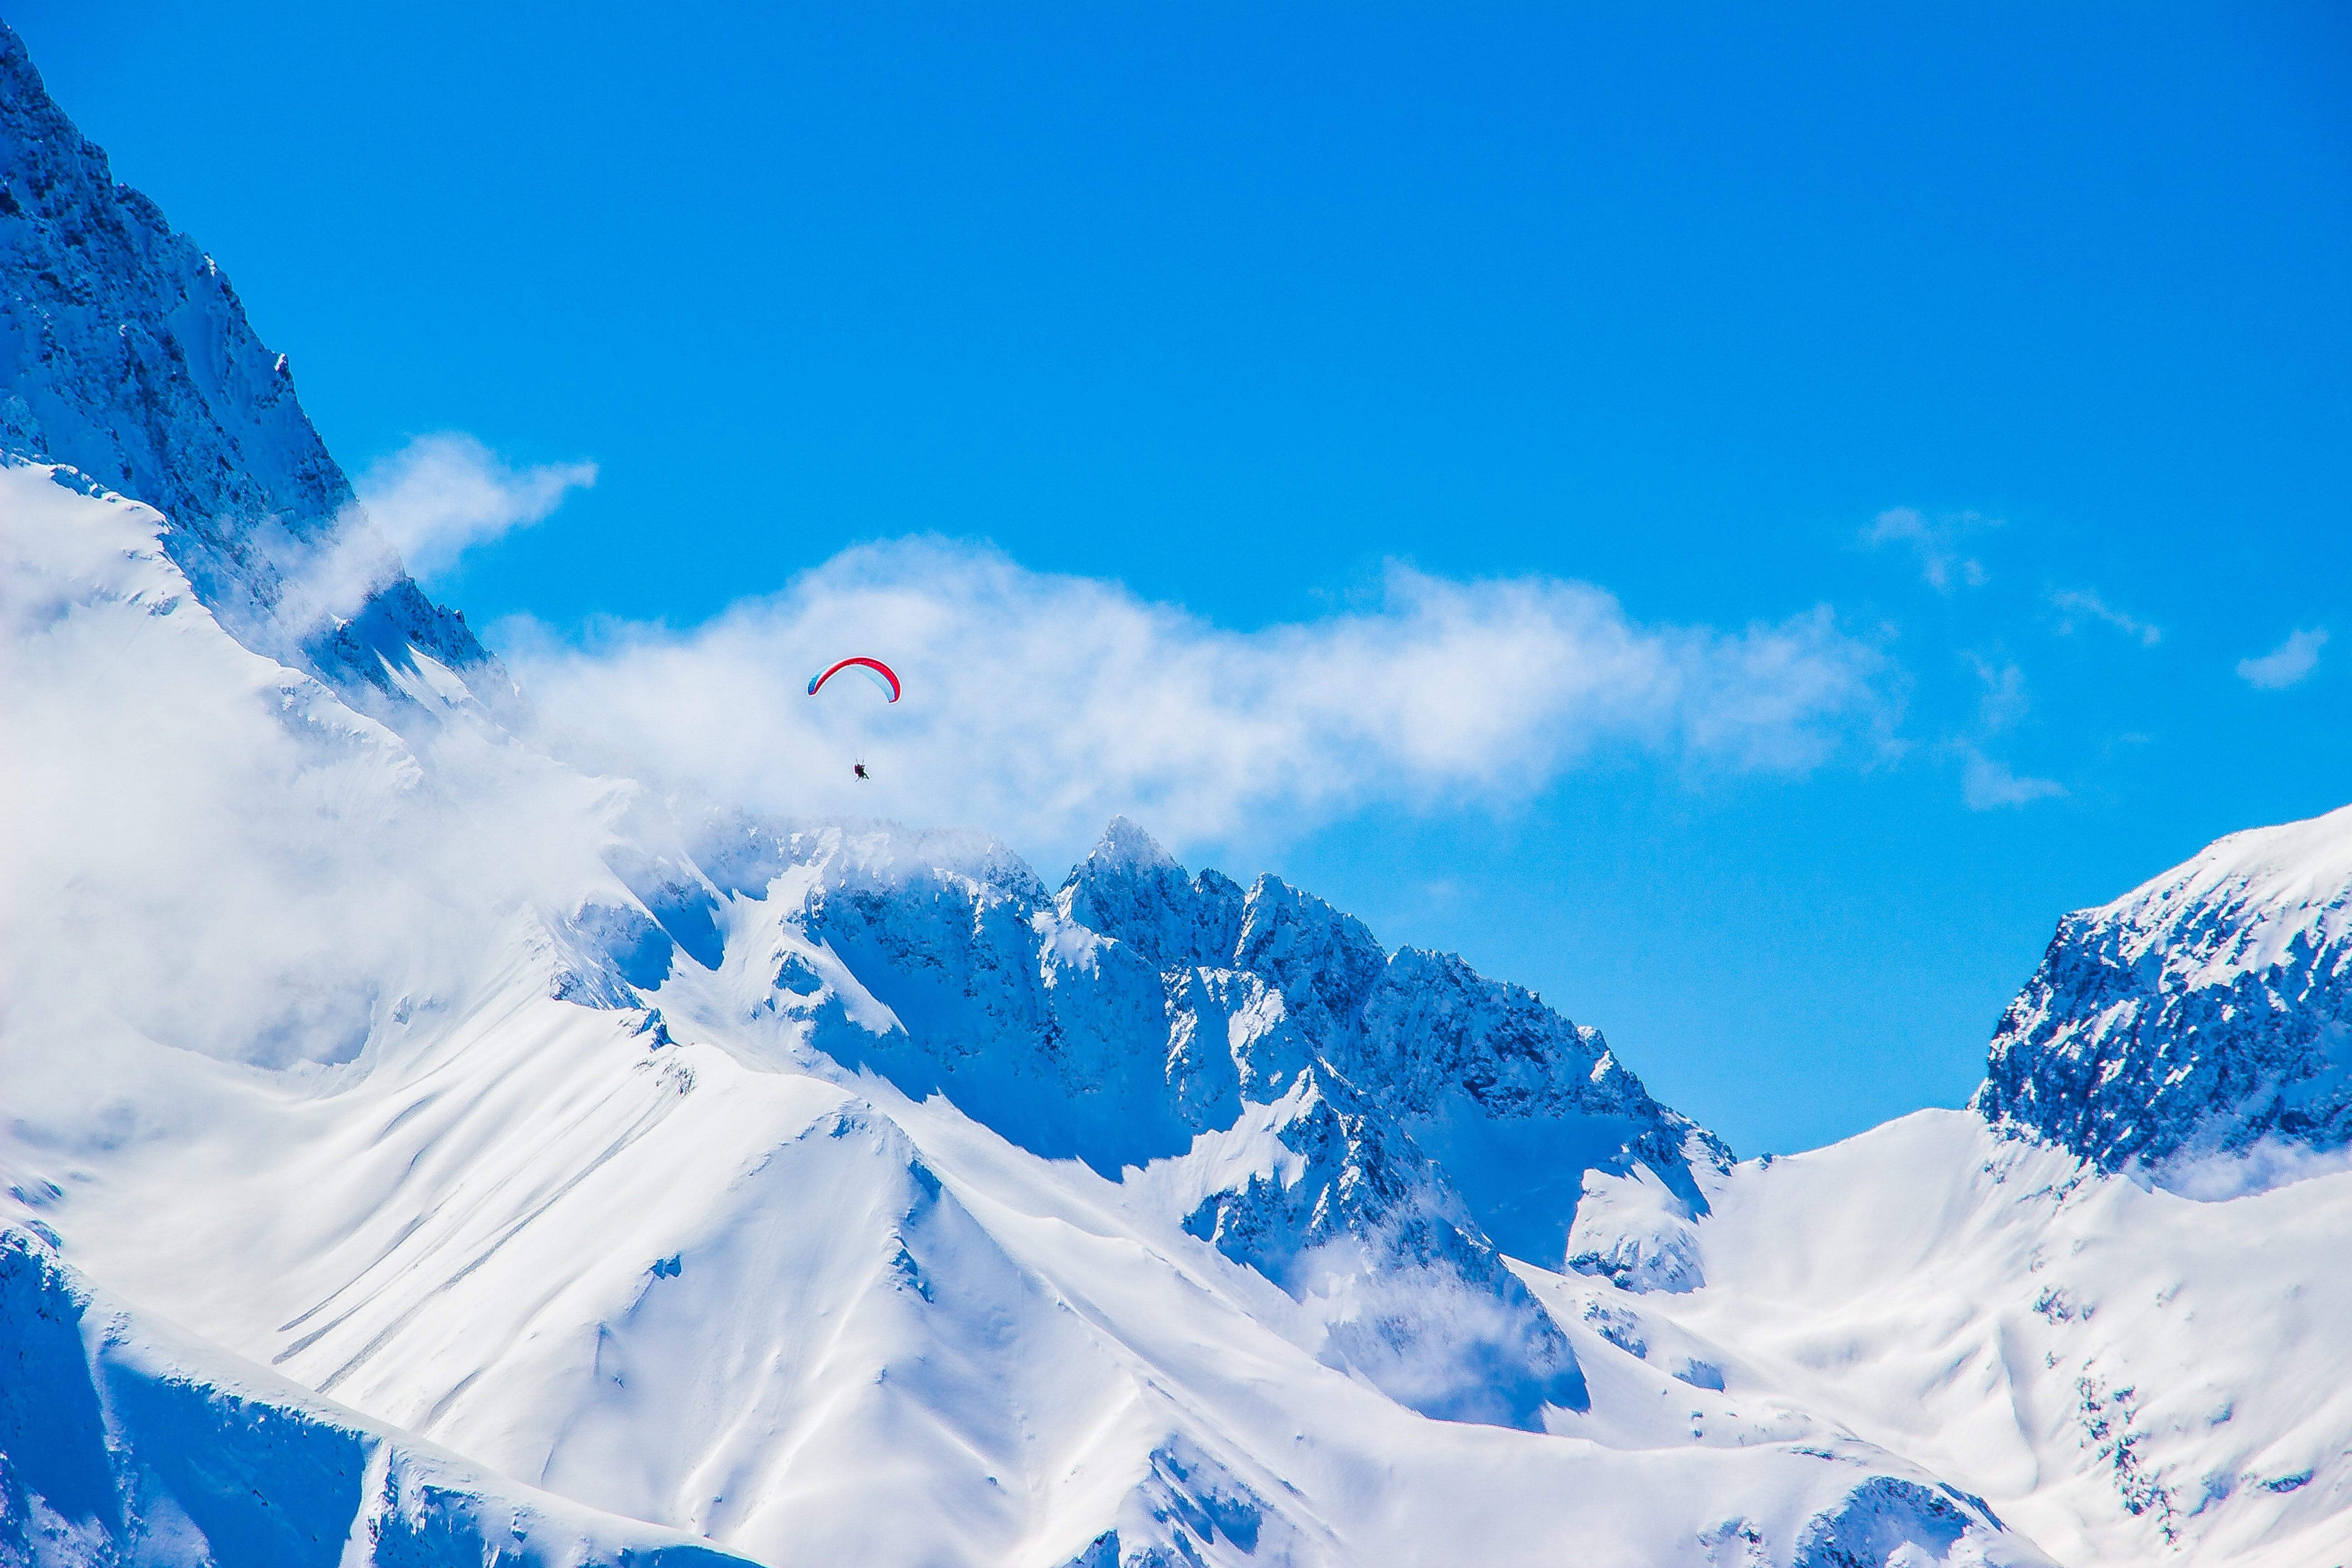 photo of person with parachute above snowy mountain